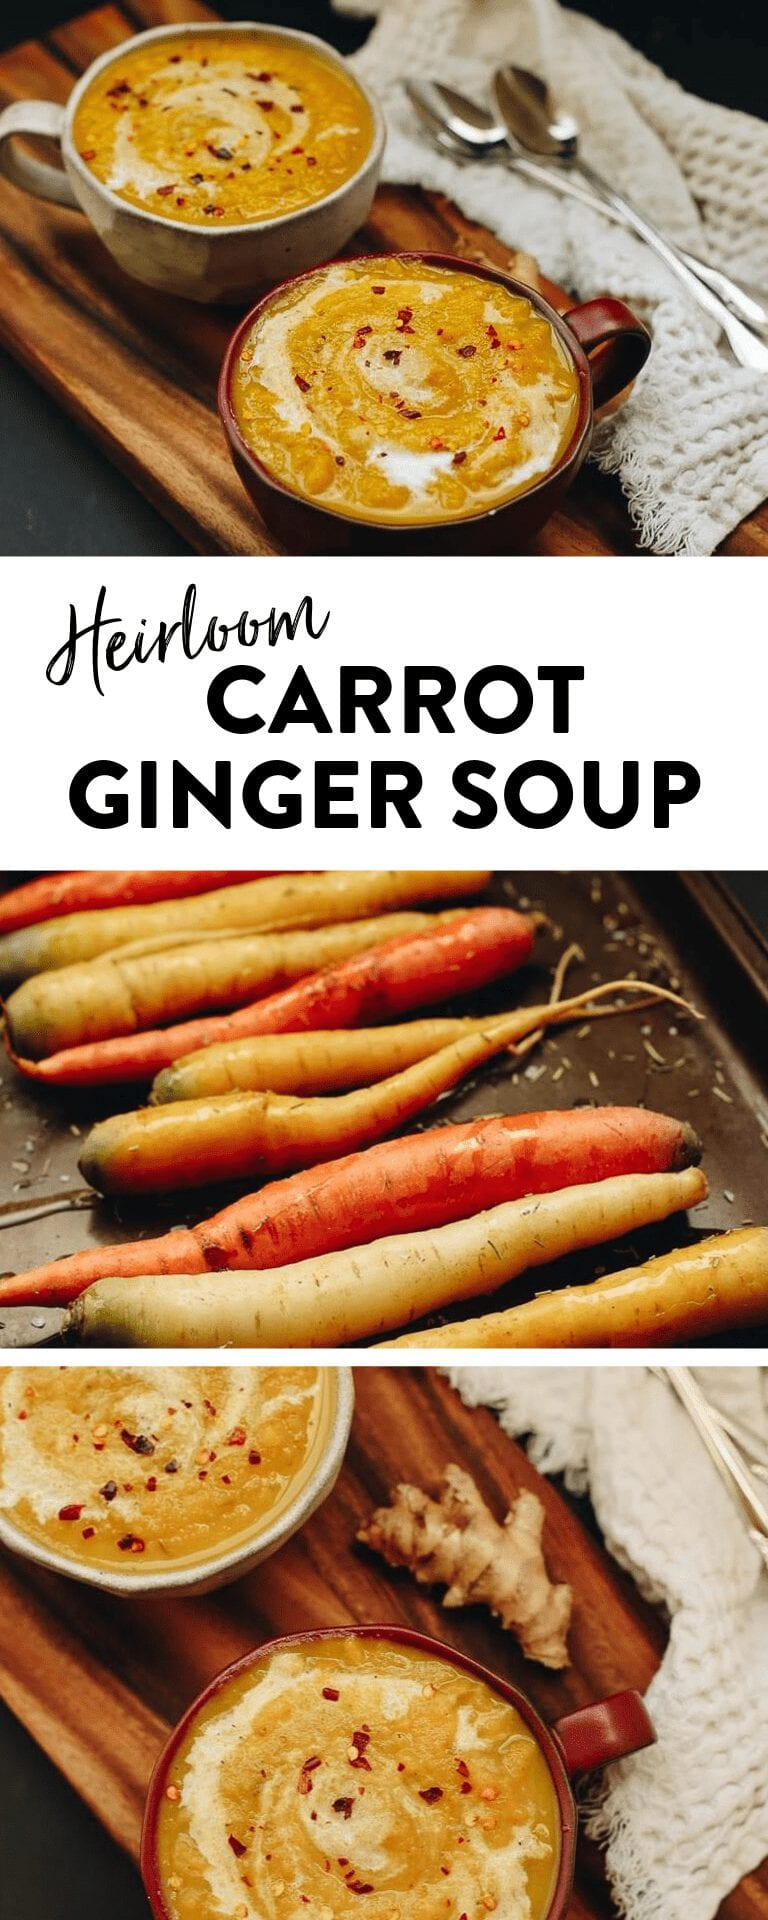 Roasted Heirloom Carrot Ginger Soup for a healthy vegan soup recipe and made extra creamy with coconut milk!